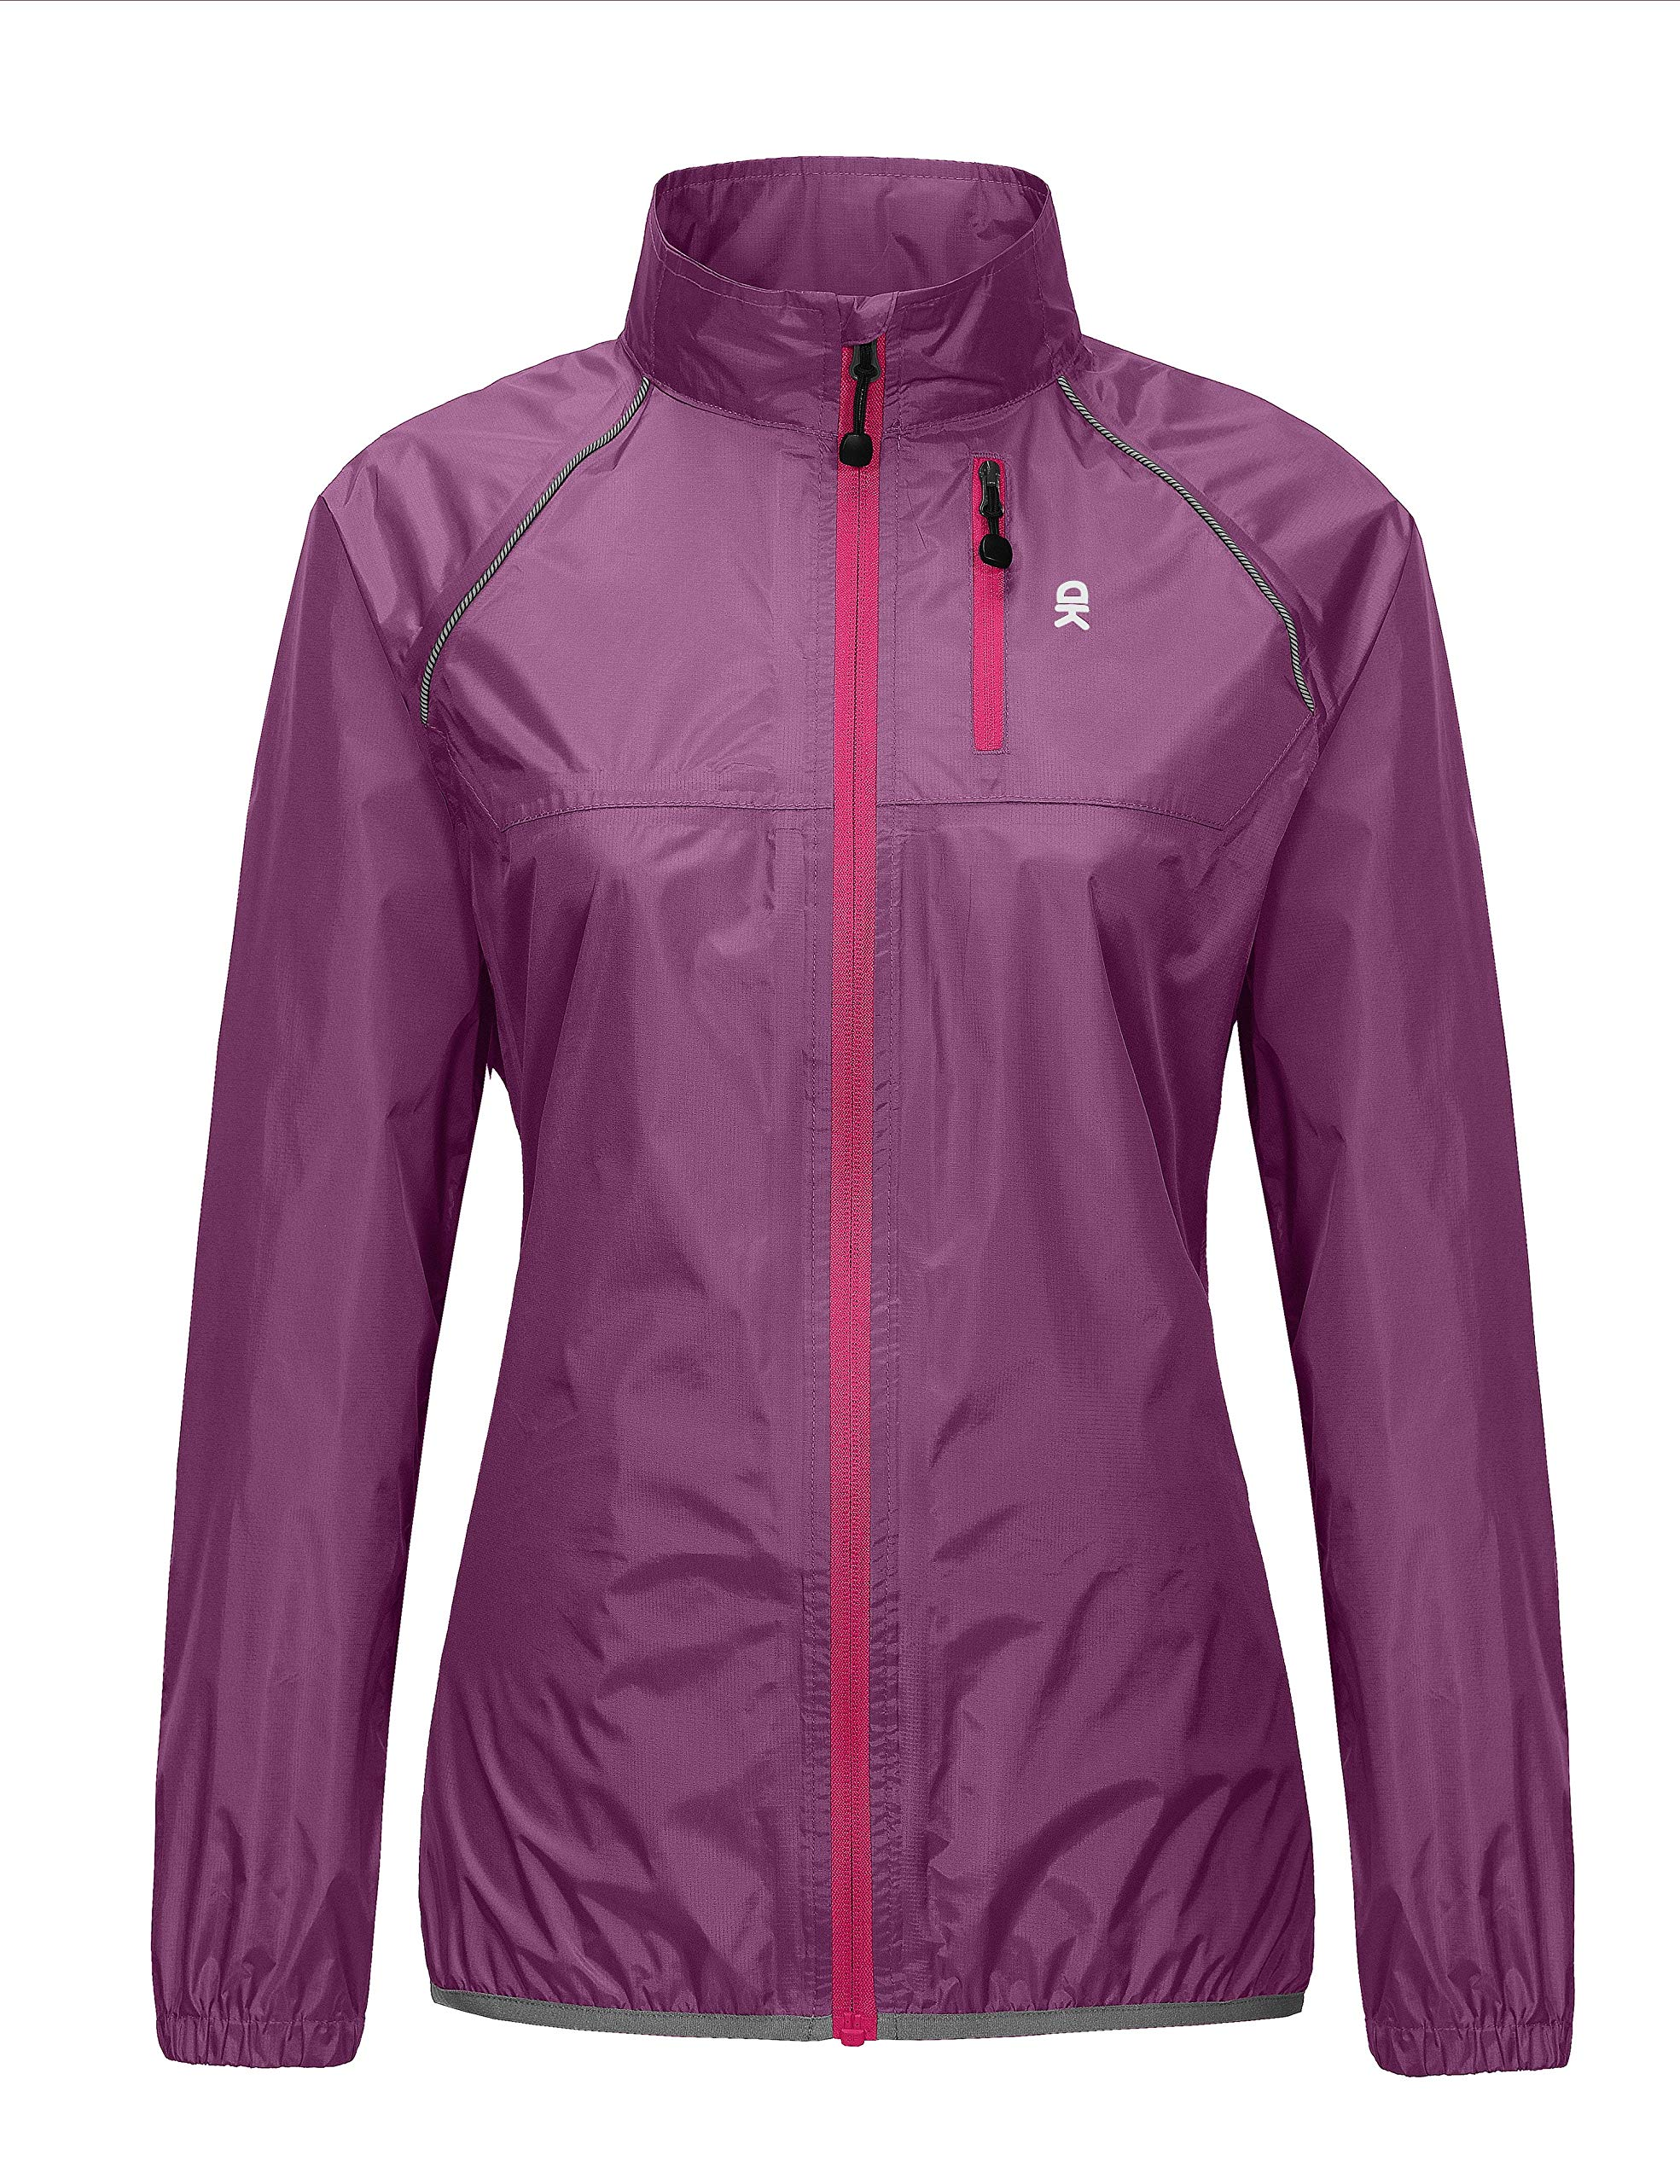 Little Donkey Andy Women's Waterproof Cycling Bike Jacket, Running Rain Jacket, Windbreaker, Ultralight and Packable Purple XL by Little Donkey Andy